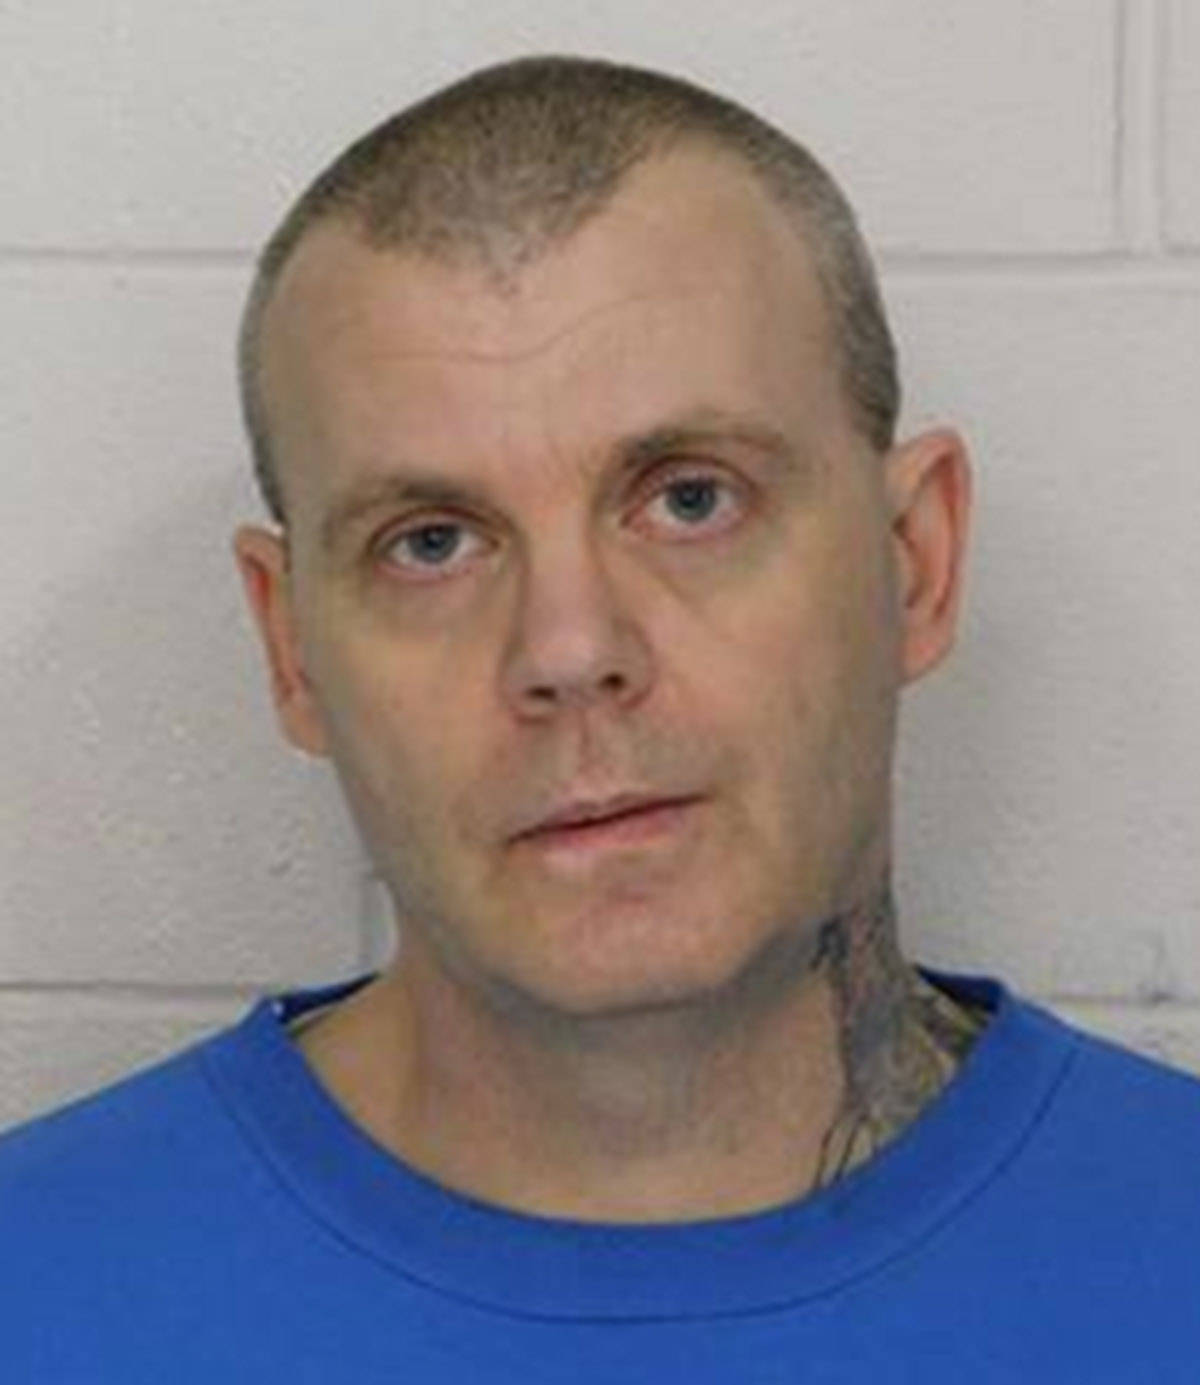 """Name: NAZAREK, Dana Age: 50 Height: 6'0"""" ft Weight: 180 lbs Hair: Black Eyes: Blue Wanted: Canada Wide Warrant – Unlawfully at Large Warrant in effect: July 5, 2021 Parole Jurisdiction: Surrey, BC"""